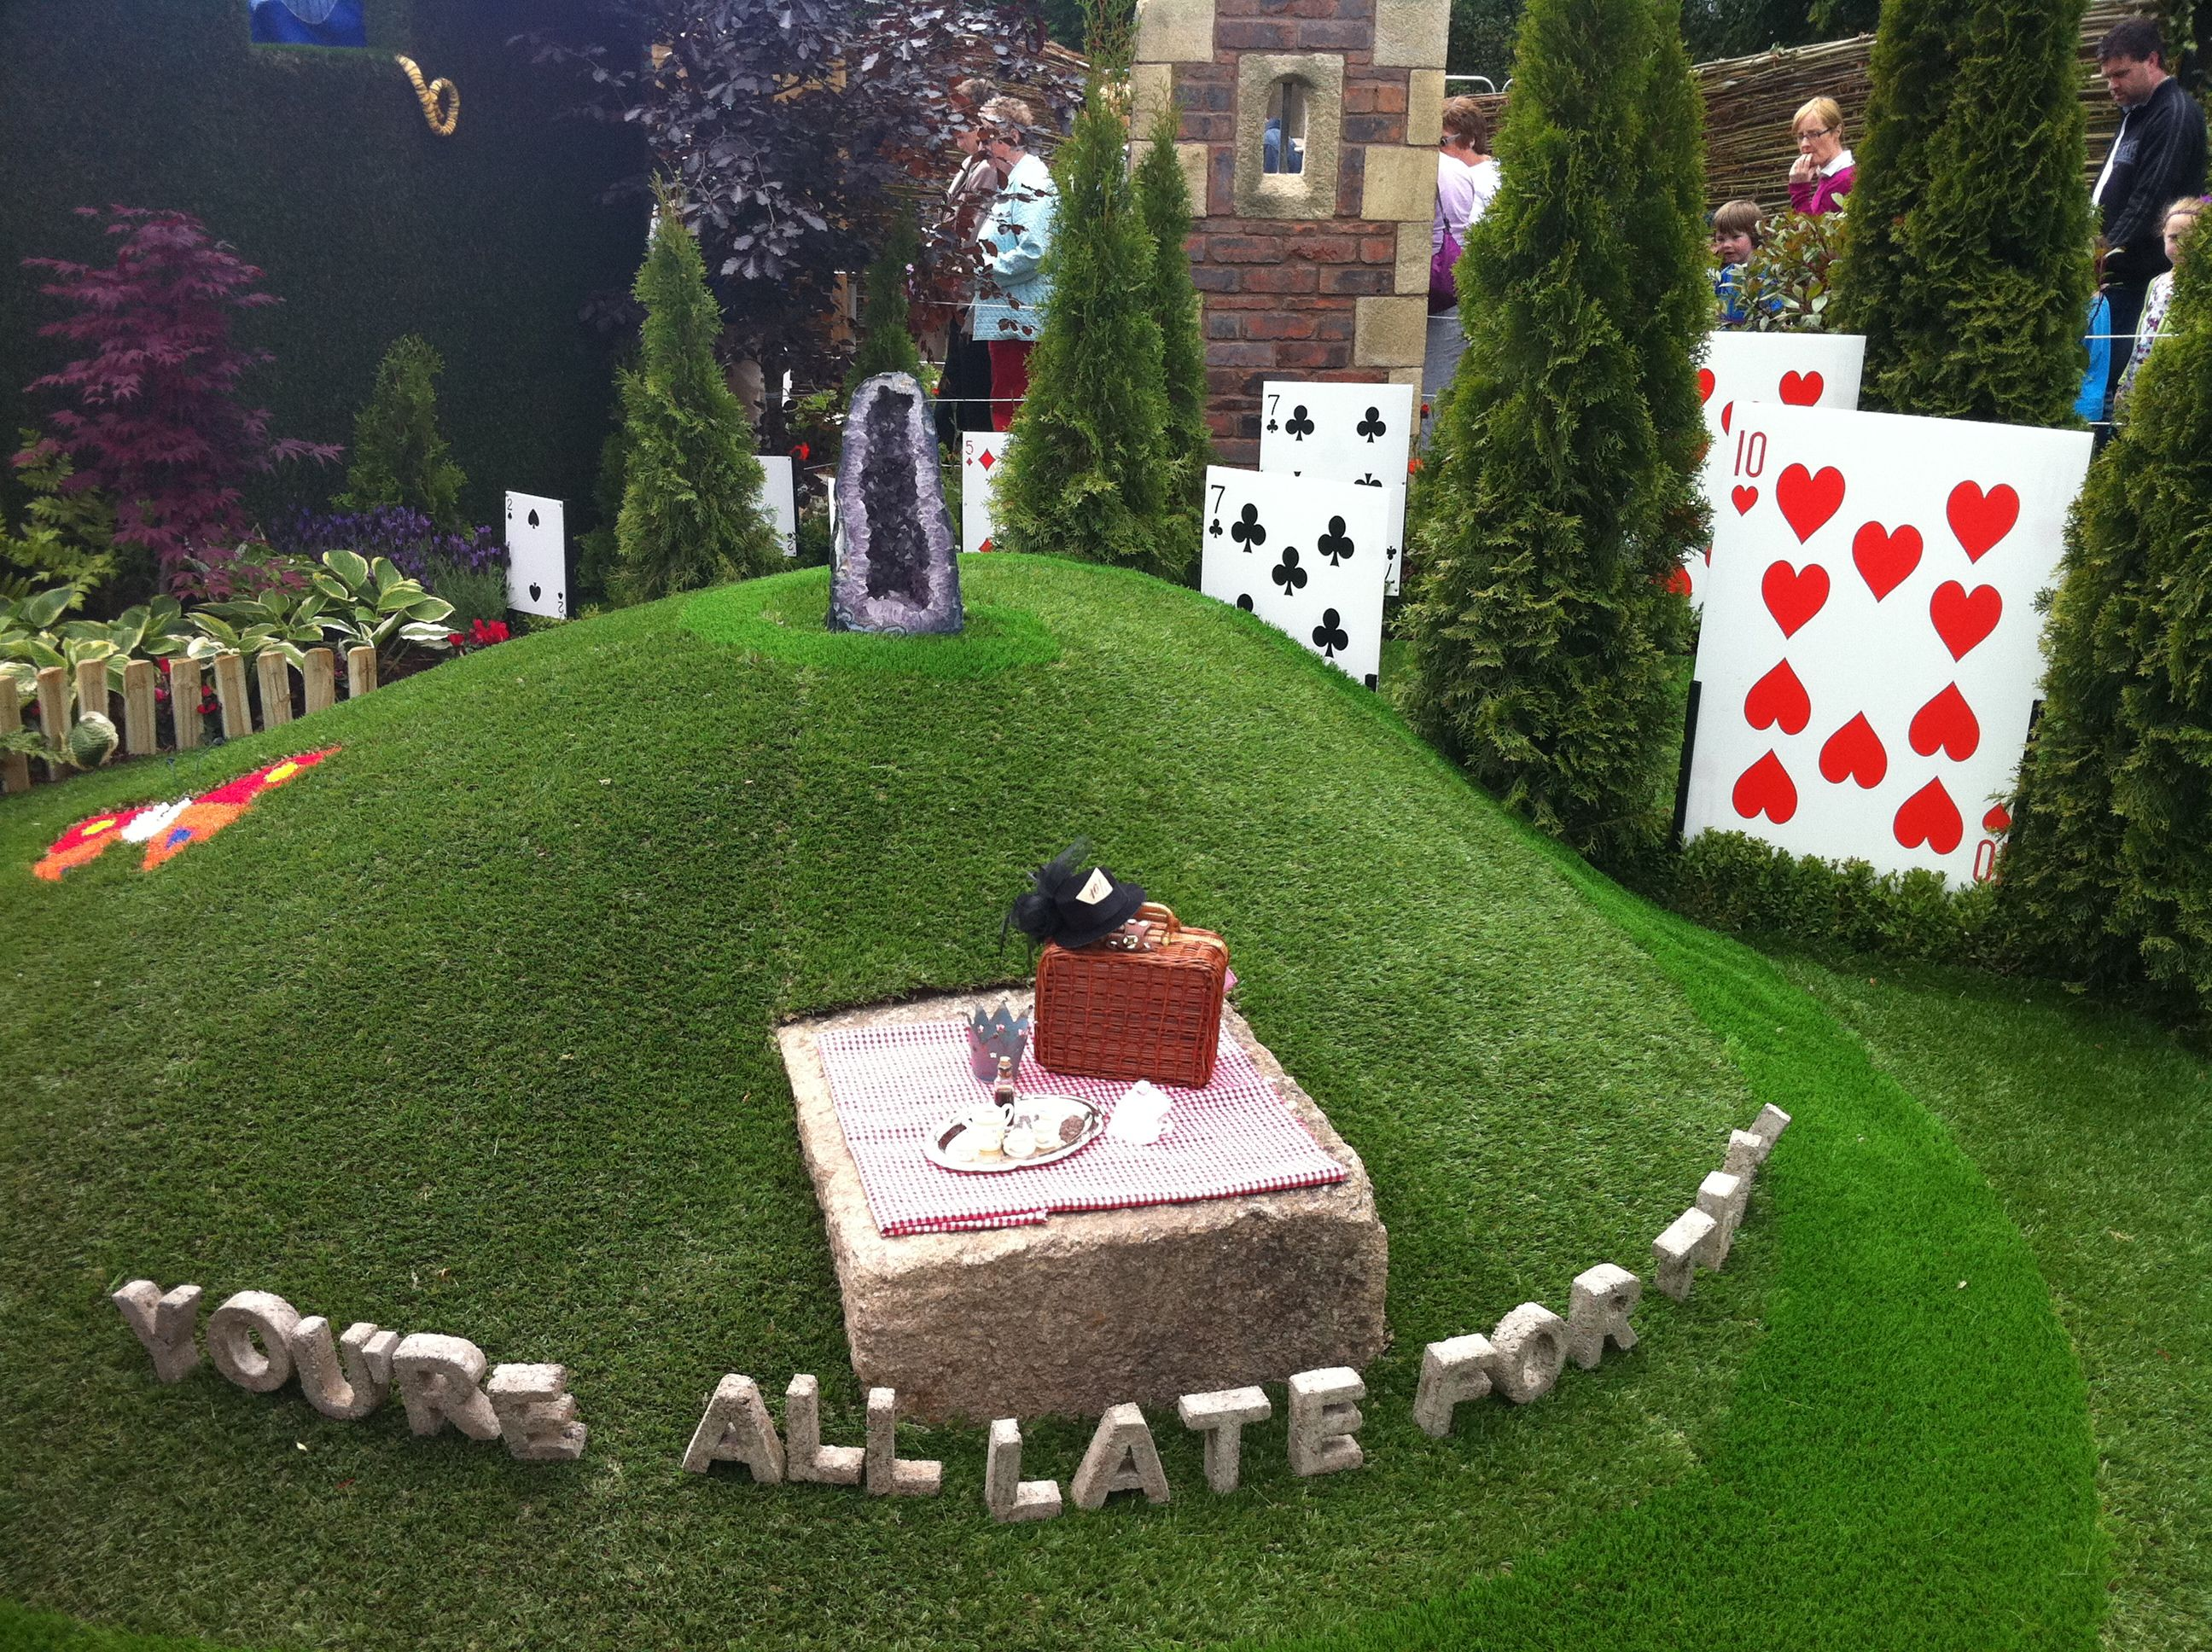 alice in wonderland center pieces Have a look at the Alice in